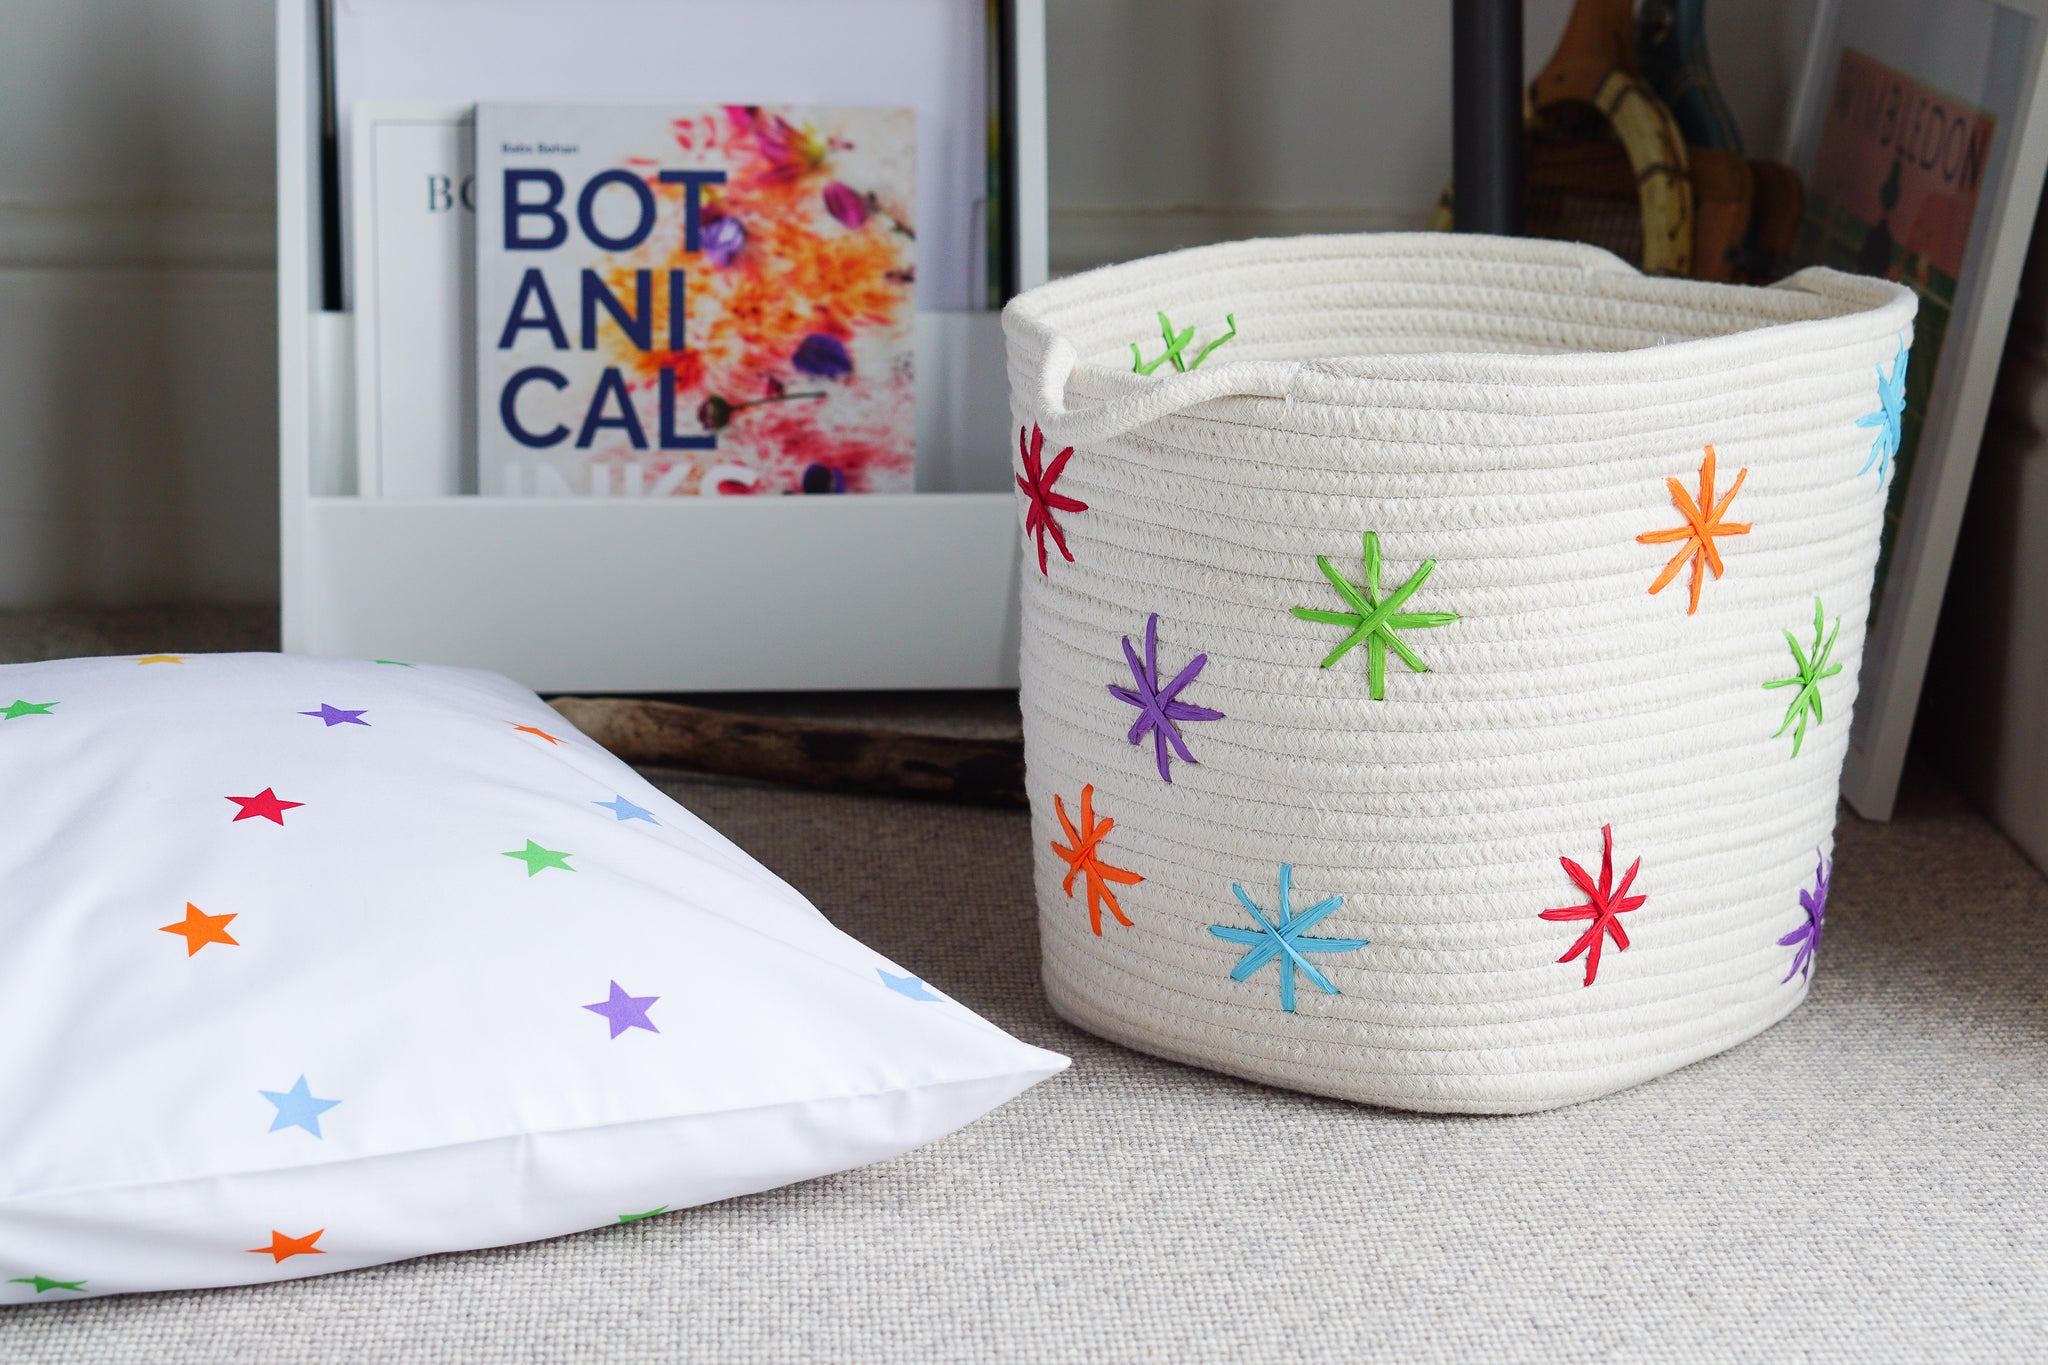 Give your ivory rope storage basket a rainbow star makeover